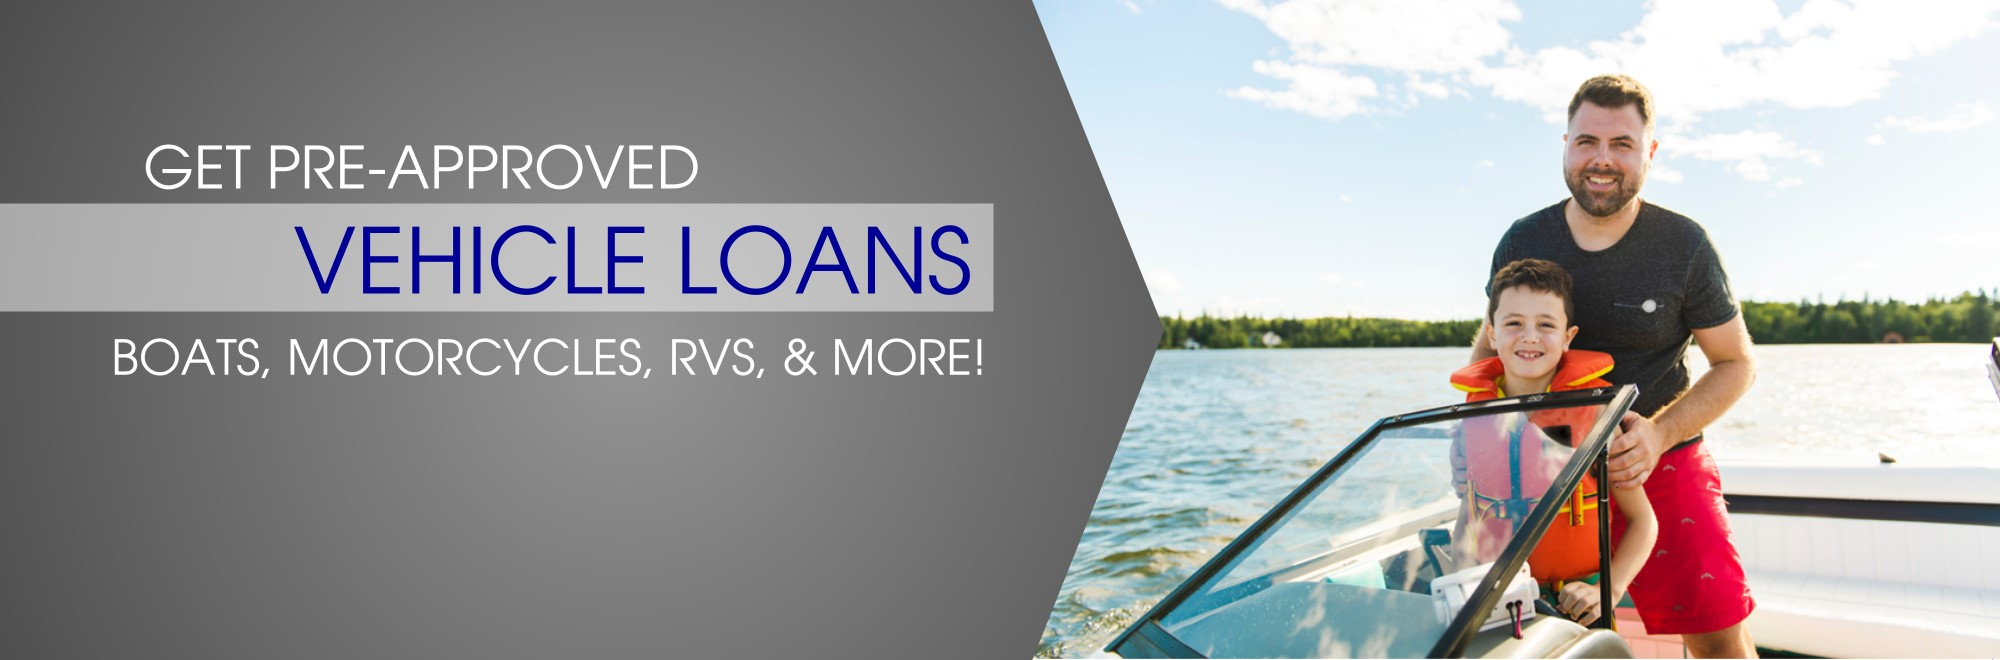 Get pre-approved Vehicle Loans Boats, Motorcycles RVs and more